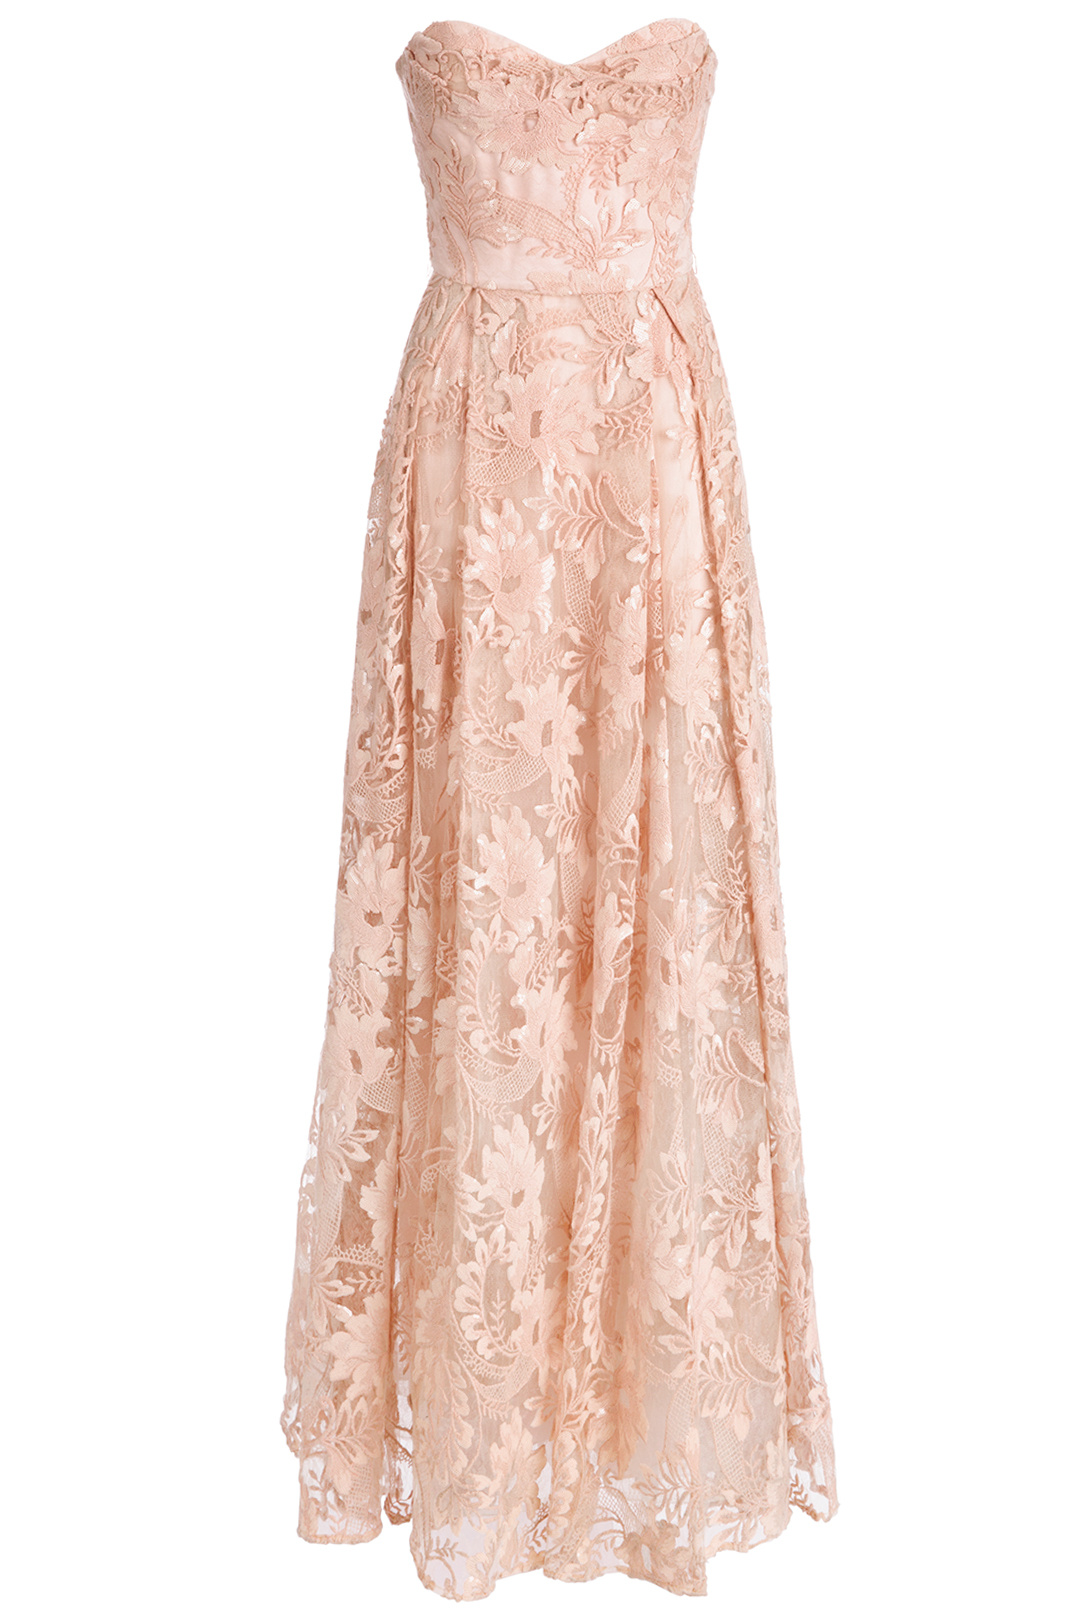 Marchesa Notte Pink Floral-Lace Pleated Women\'s Size 10 Maxi Dress ...